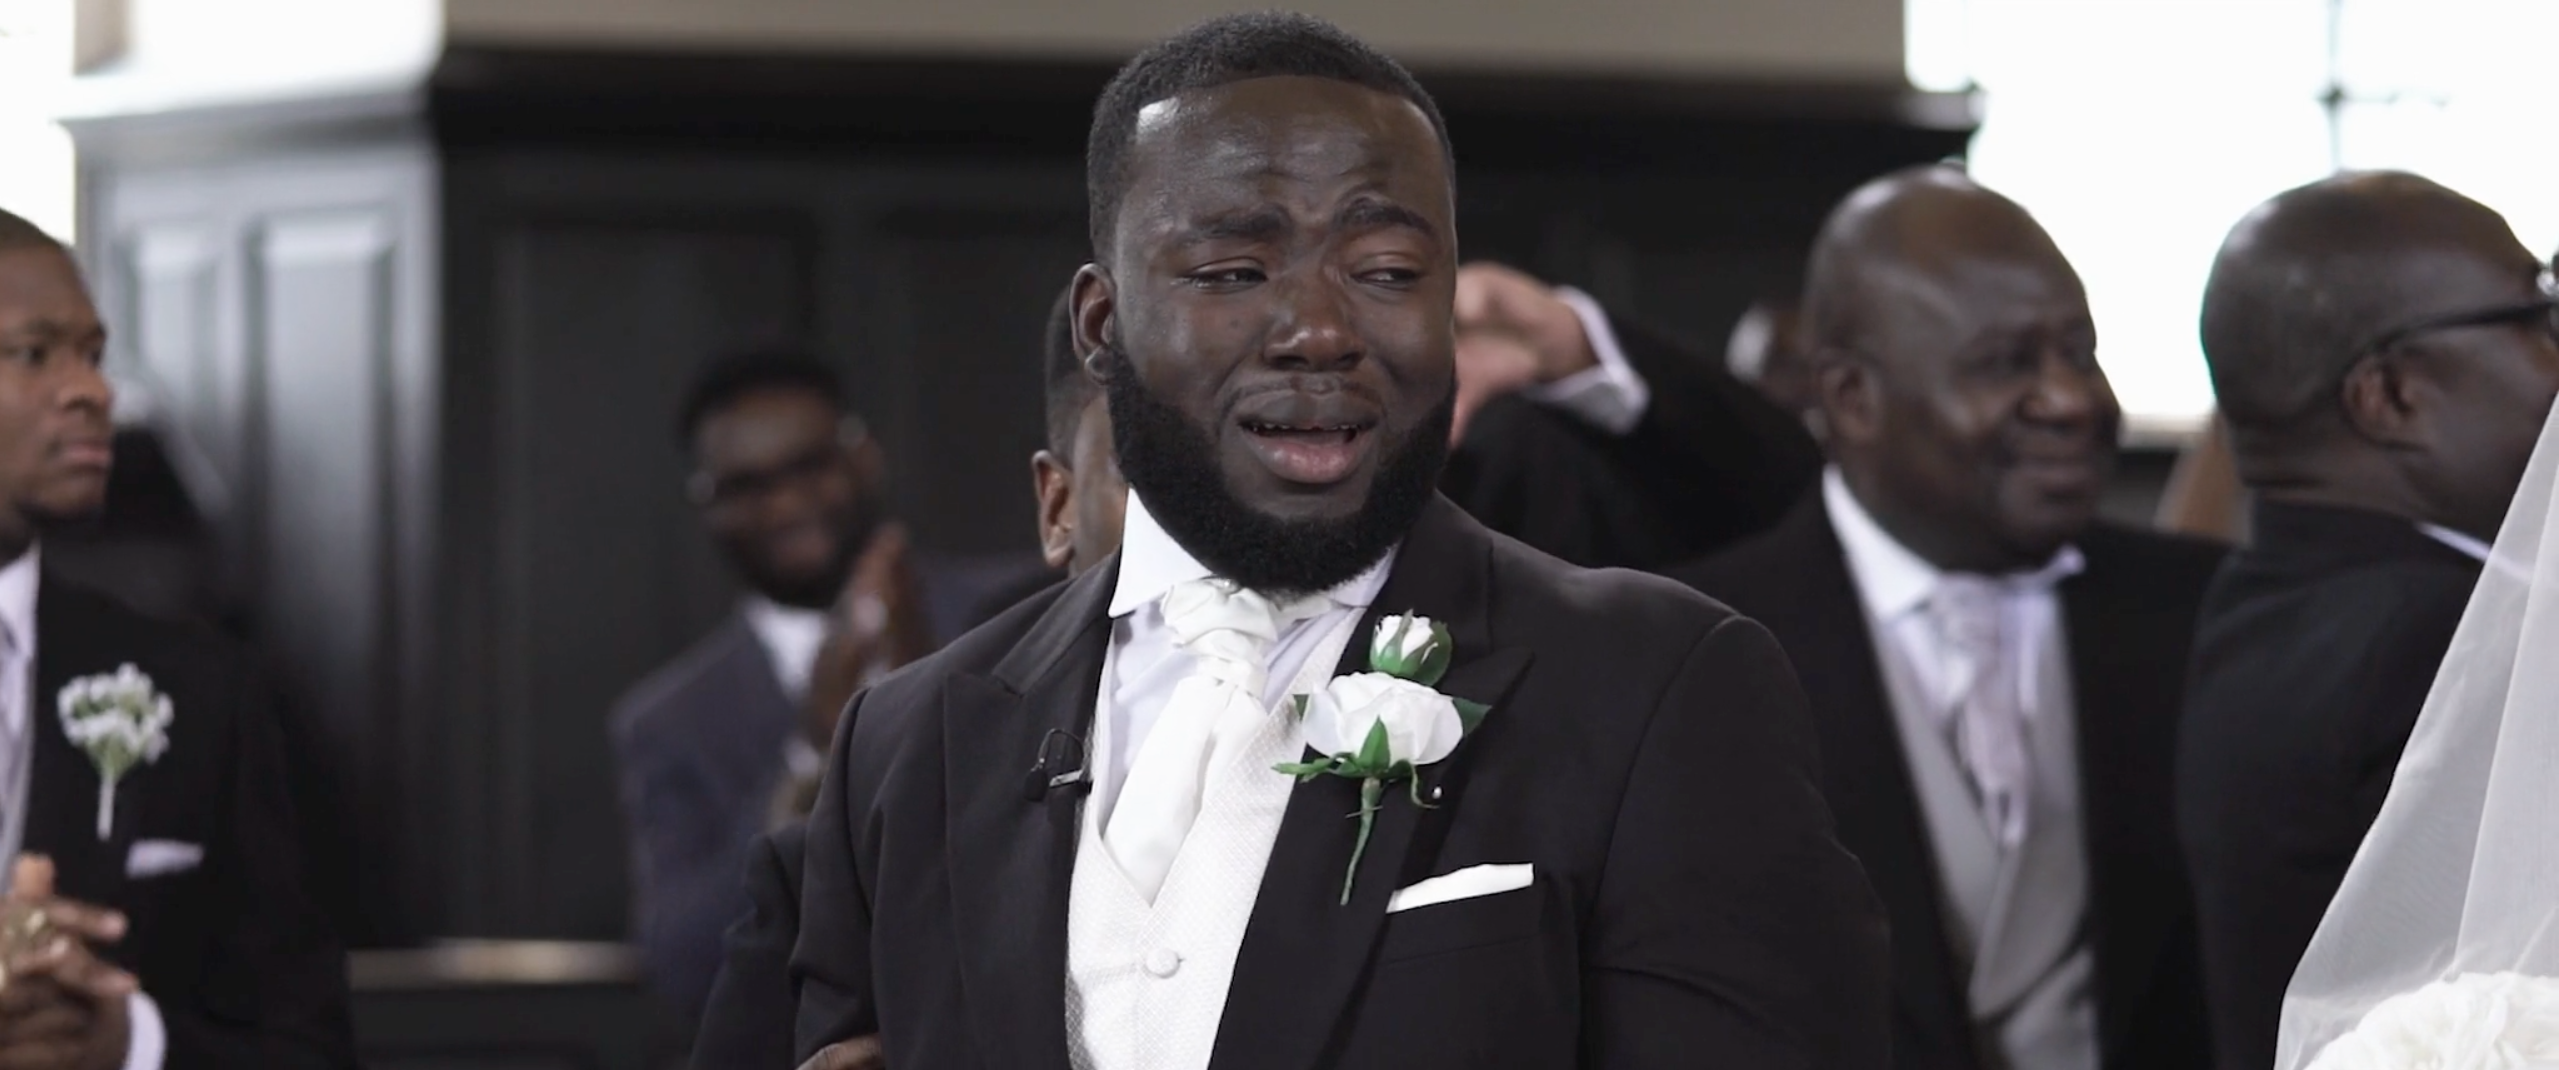 PopsugarLoveViral VideosGroom Cries as Bride Walks Down the AisleGrooms Take Note: This Video of a Man Crying as His Bride Walks Down the Aisle Is PerfectJune 12, 2016 by Eleanor SheehanFirst Published: June 9, 2016155 SharesChat with us on Facebook Messenger. Learn what's trending across POPSUGAR.Walking down the aisle is emotional, maybe even the most emotional event of a wedding. A viral video of a groom in tears as his wife-to-be walks down the aisle is a testament to just how emotional that short journey is. Gabriel and Annabelle Deko got married in May, but a video of Annabelle's walk down the aisle was posted to Vimeo this week and people are understandably moved. Gabriel, smiling, is totally staggered by his wife's beauty and they both can't hold back tears. Eventually, the bridesmaids are crying as well . . . and we can barely hold back our own tears. We're sure this couple will cherish this beautifully captured moment forever. Grooms, take note. Below are some of our favorite moments from the video. - 웹